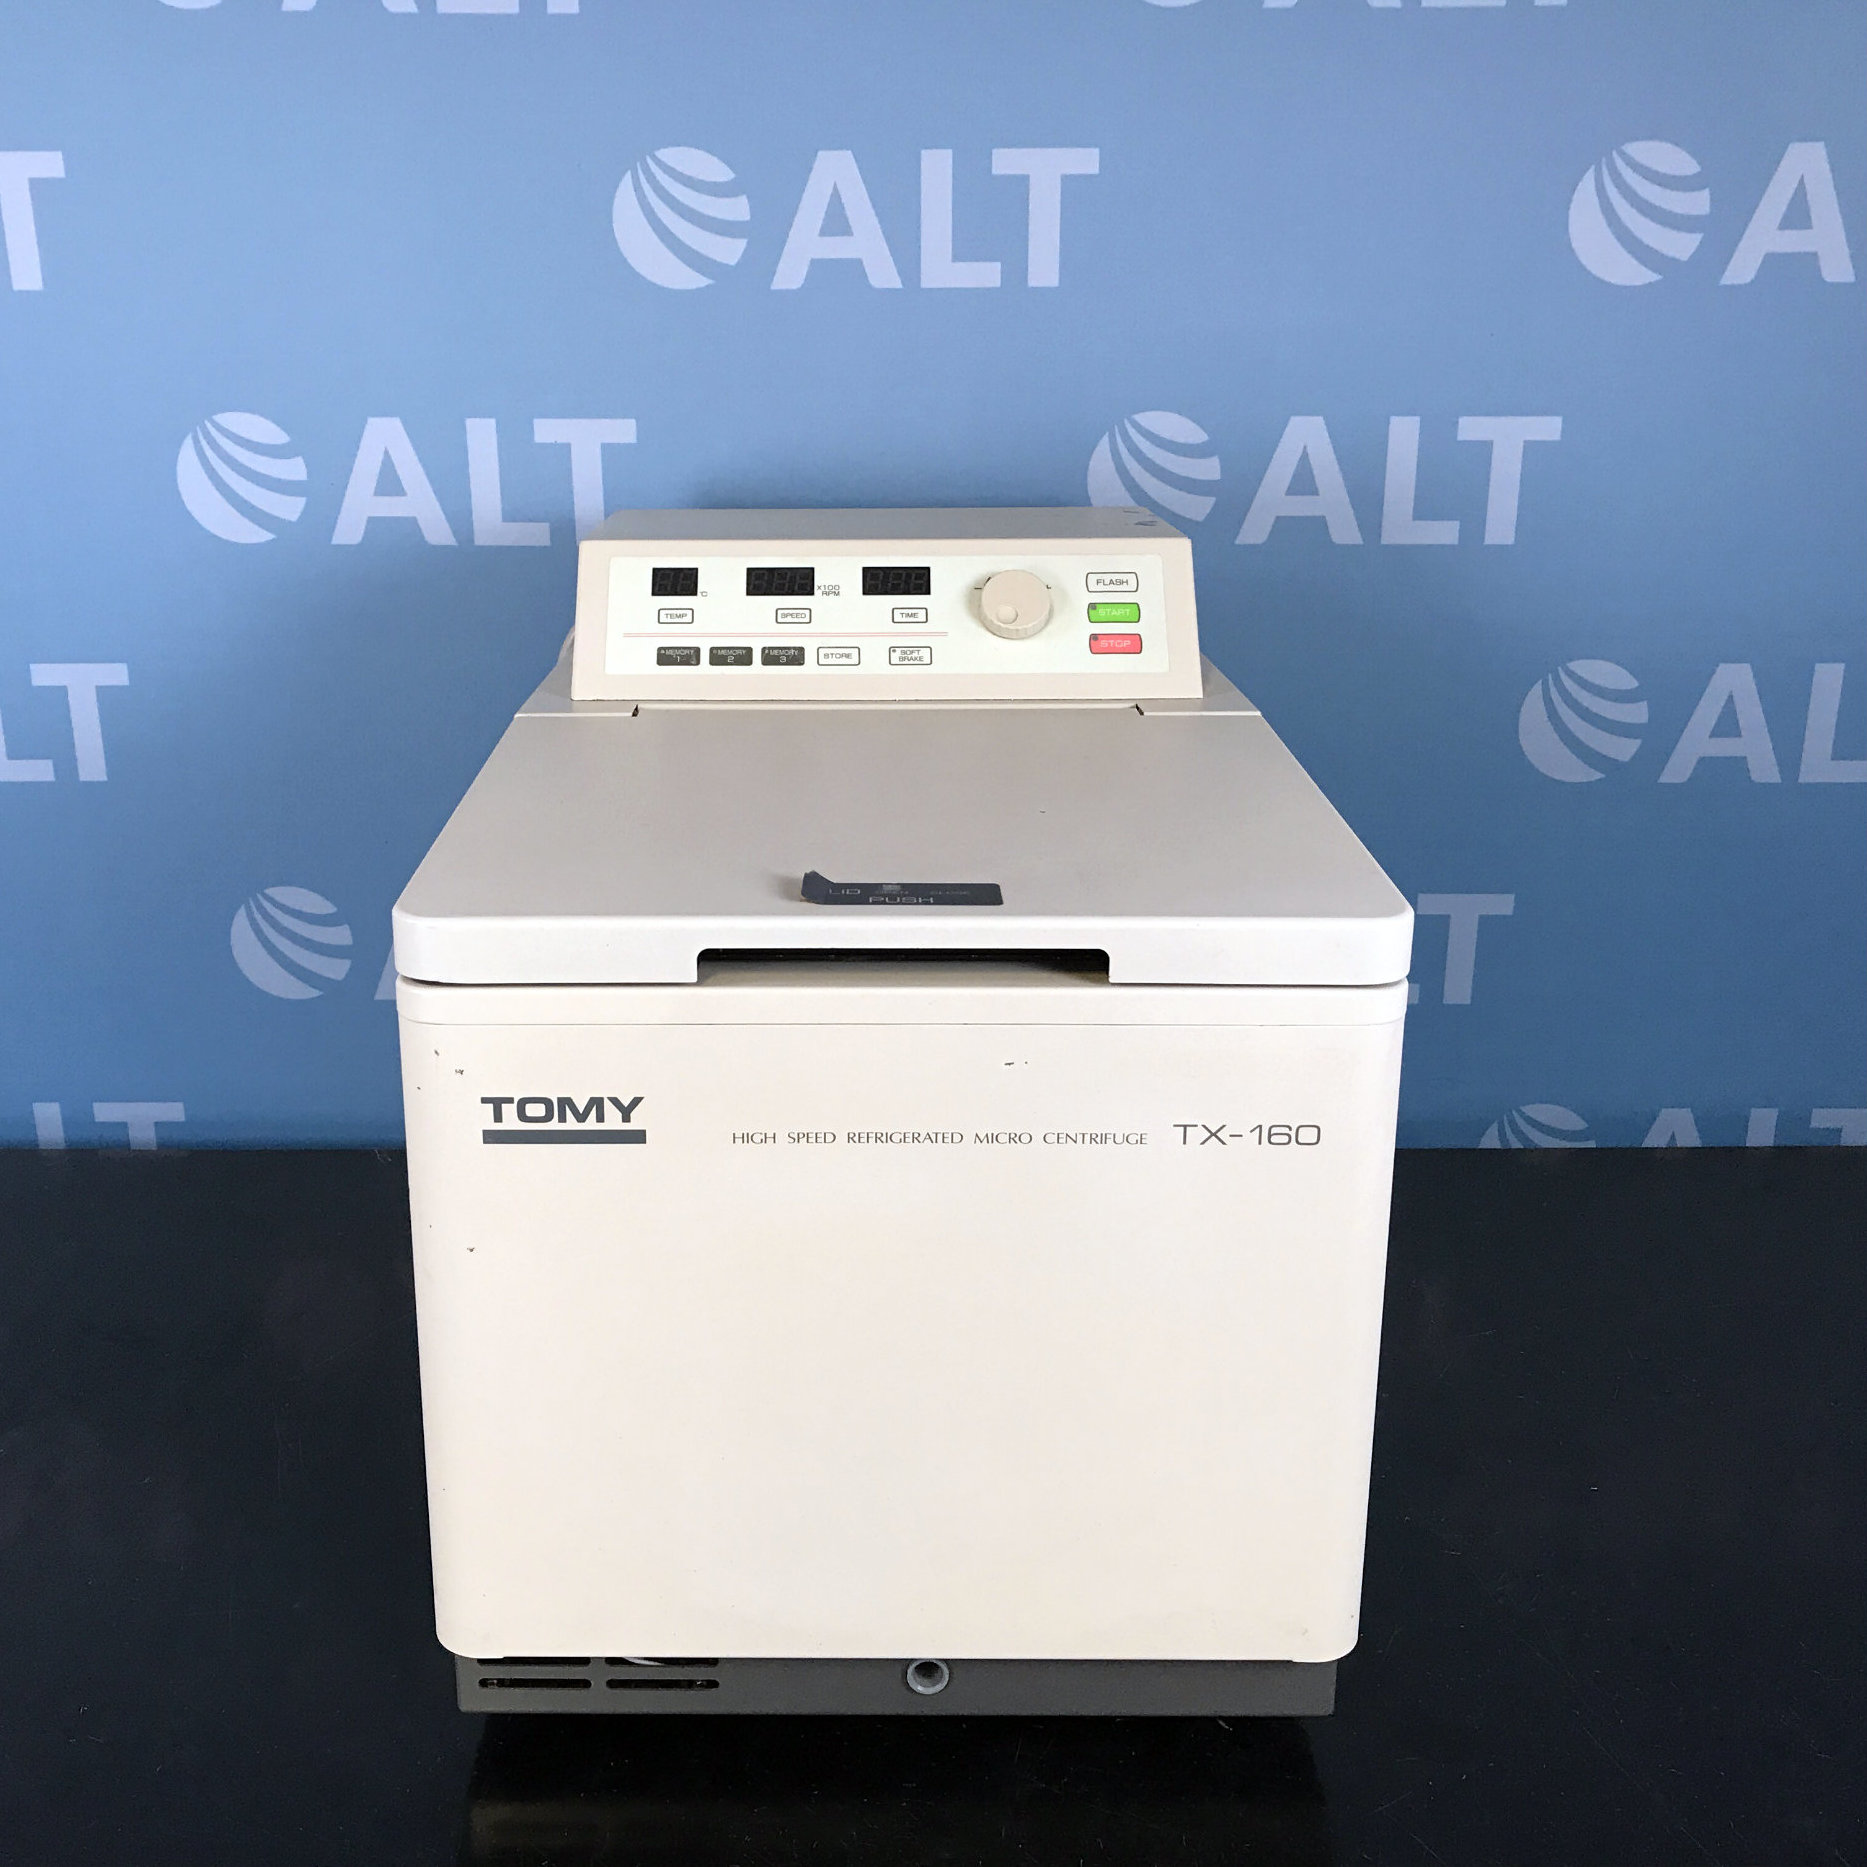 TX-160 High Speed Refrigerated Micro Centrifuge Name